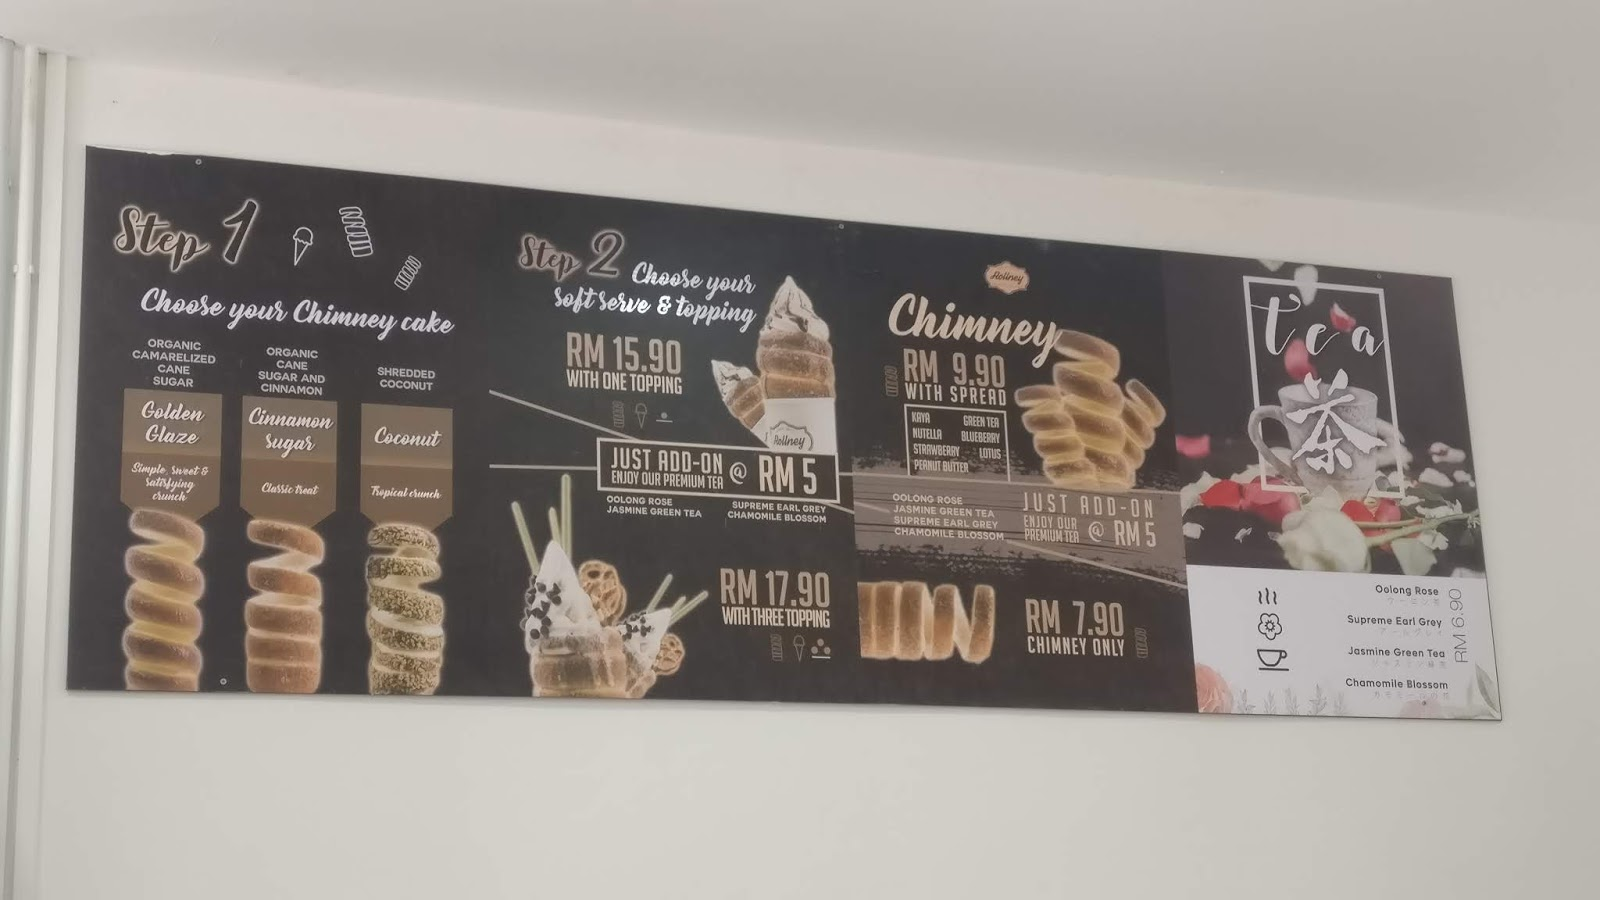 It's About Food!!: Rollney @ Leith Street